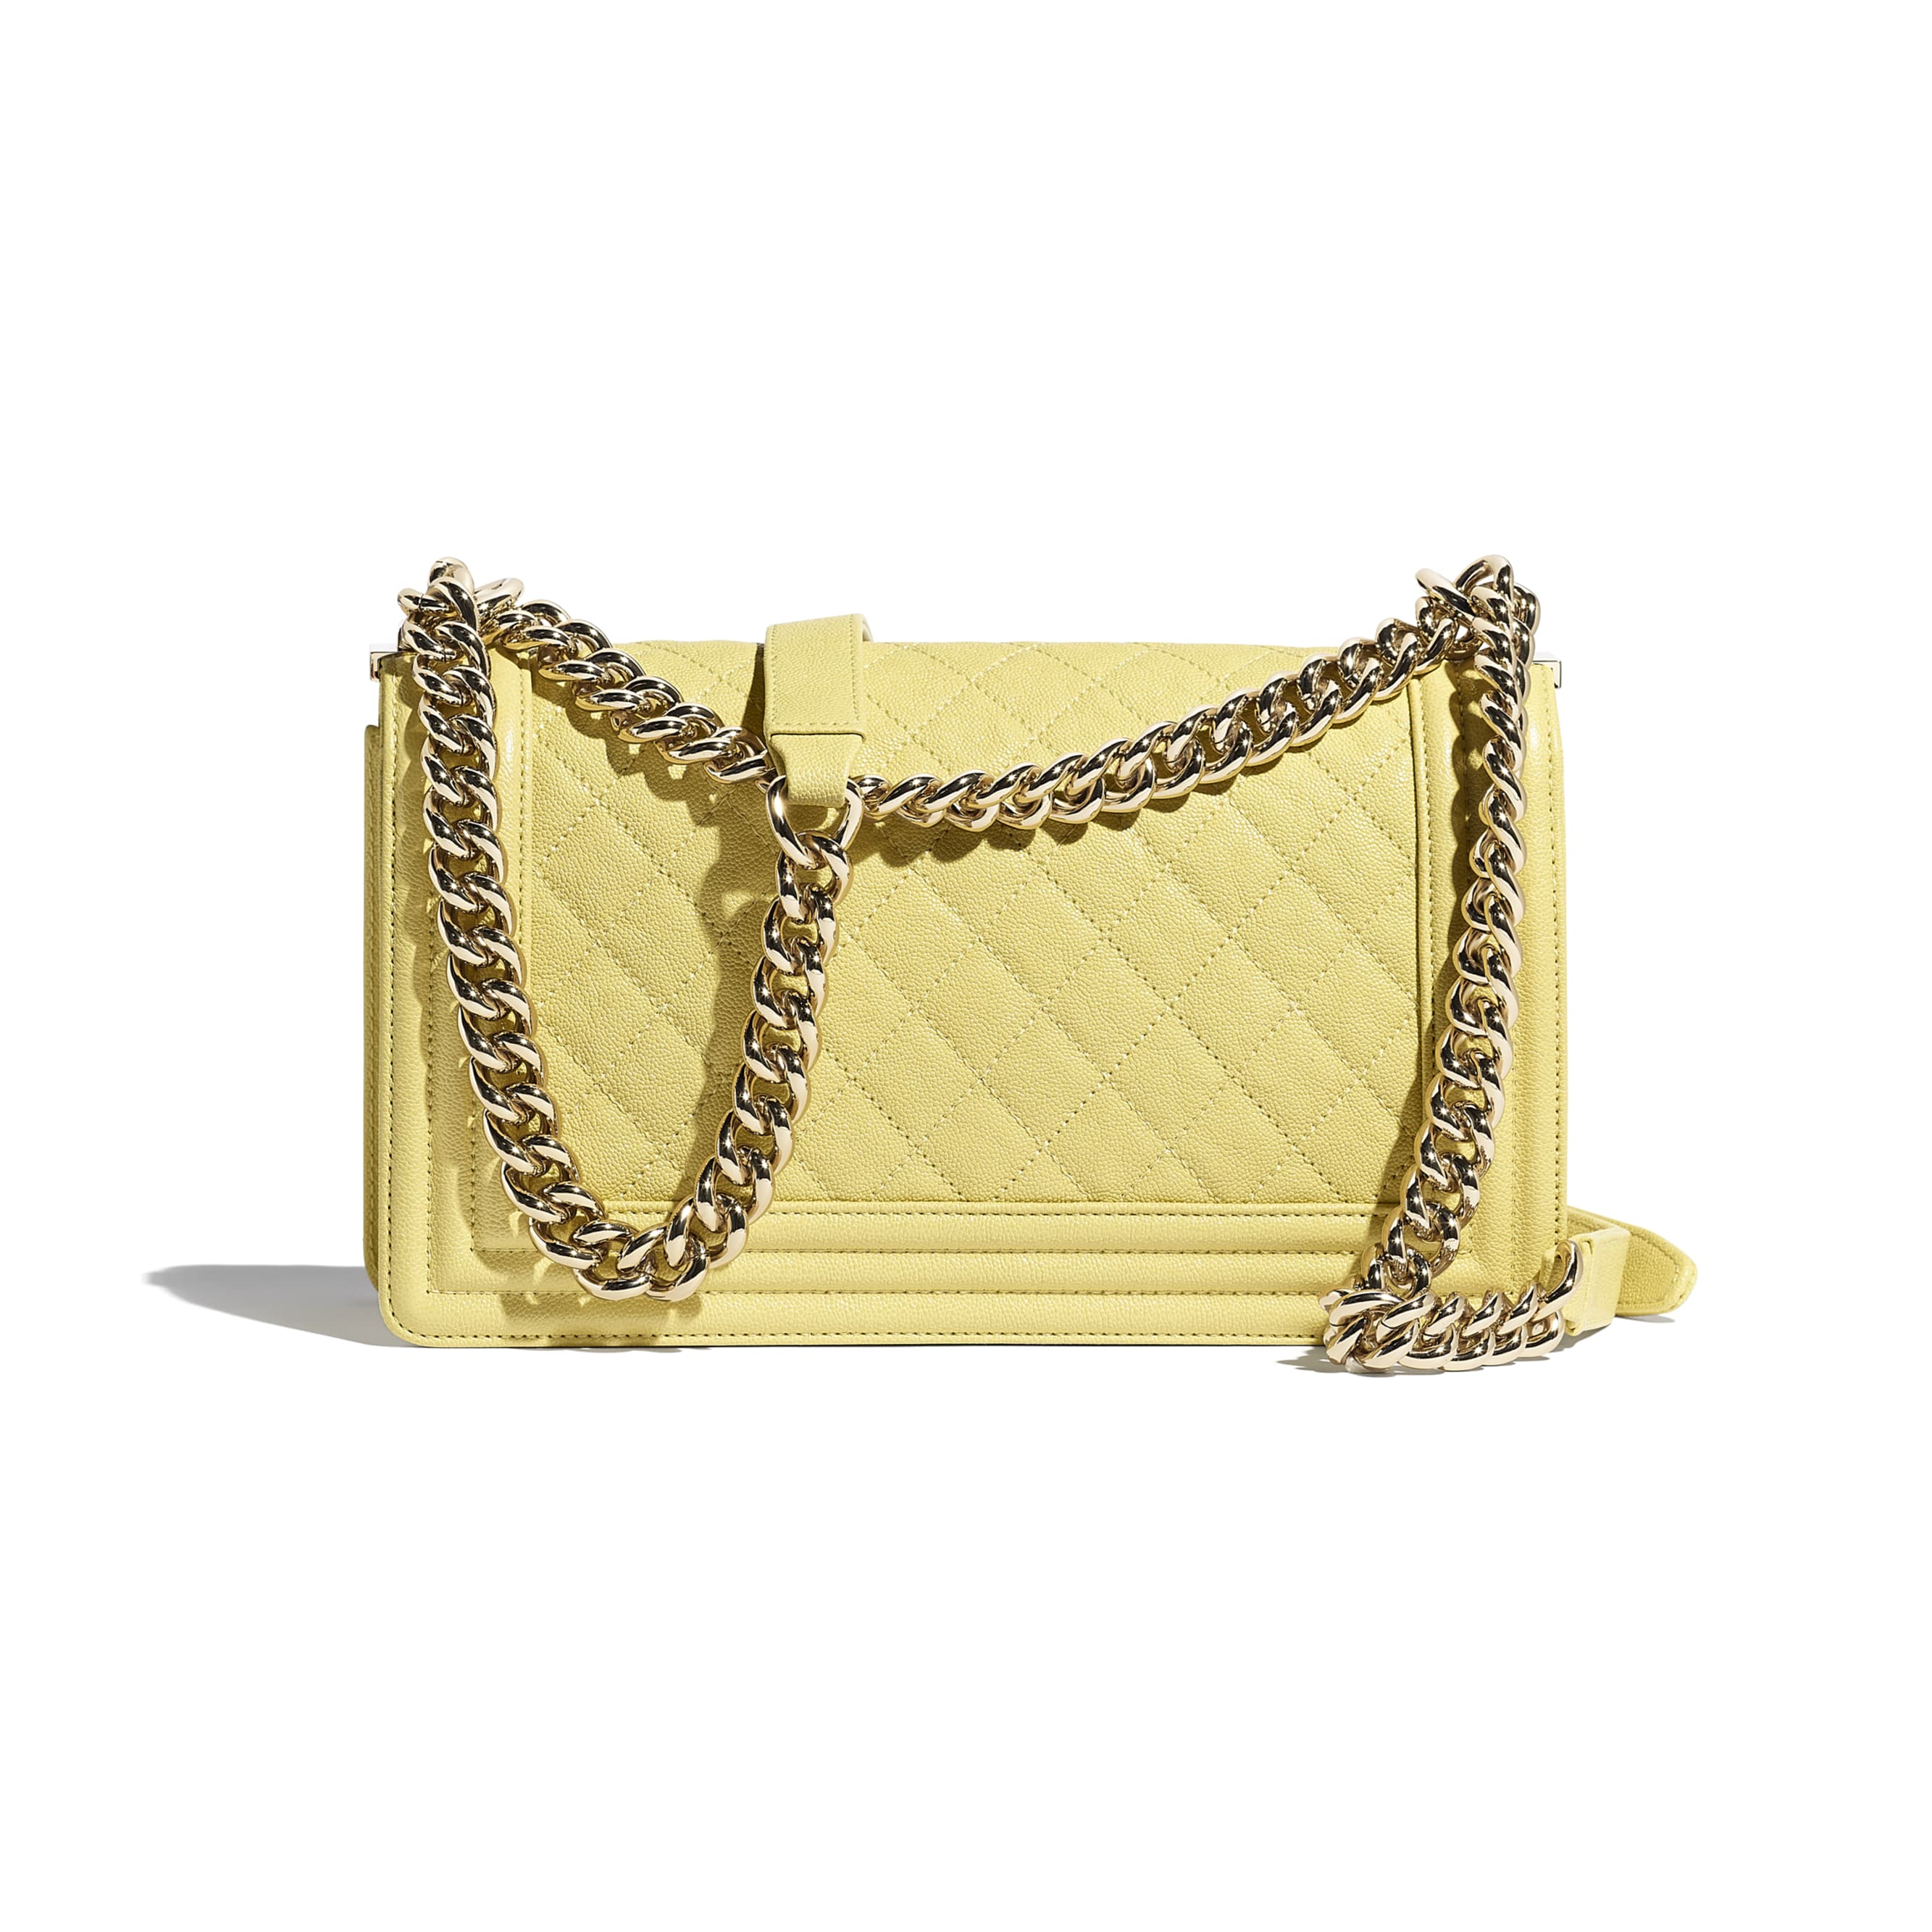 BOY CHANEL Handbag - Yellow - Grained Calfskin & Gold-Tone Metal - CHANEL - Alternative view - see standard sized version